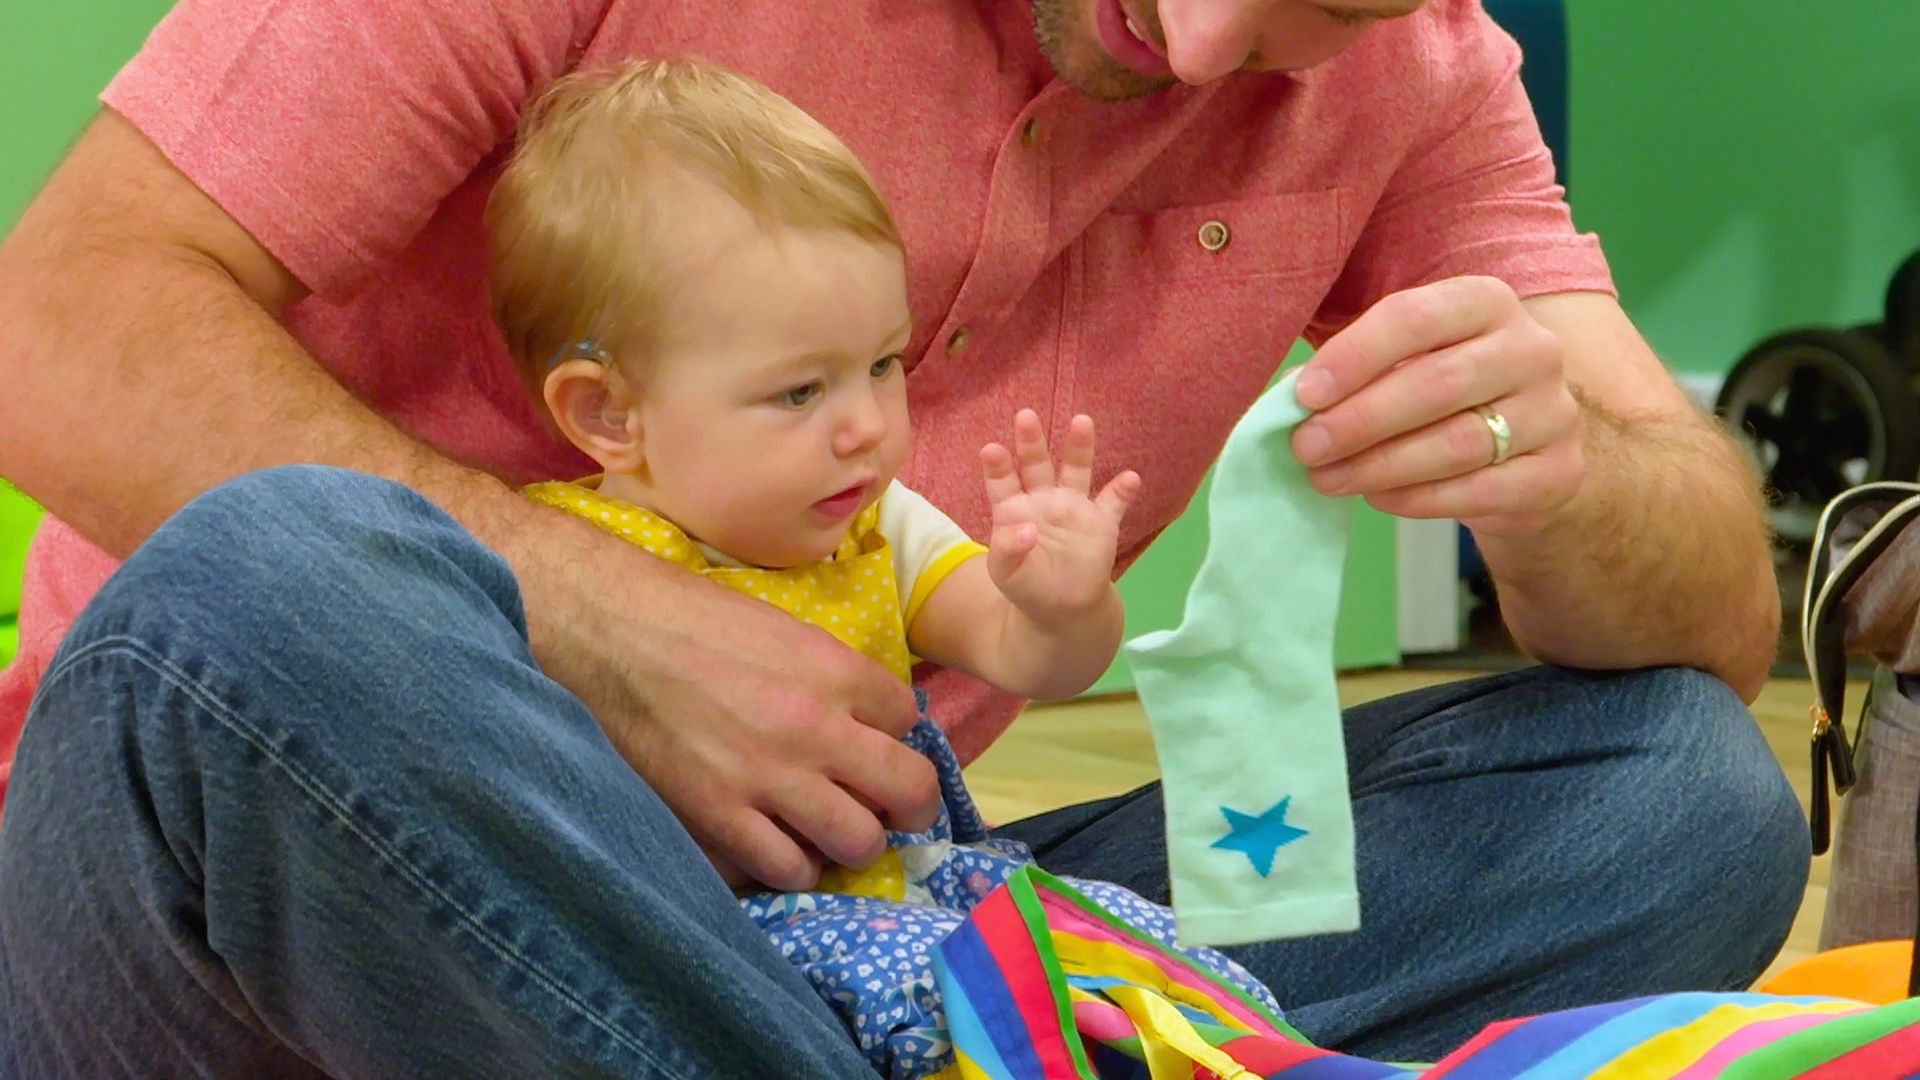 Nigel's Baby Club Diaries - Playing with Socks - Good Parenting Tips